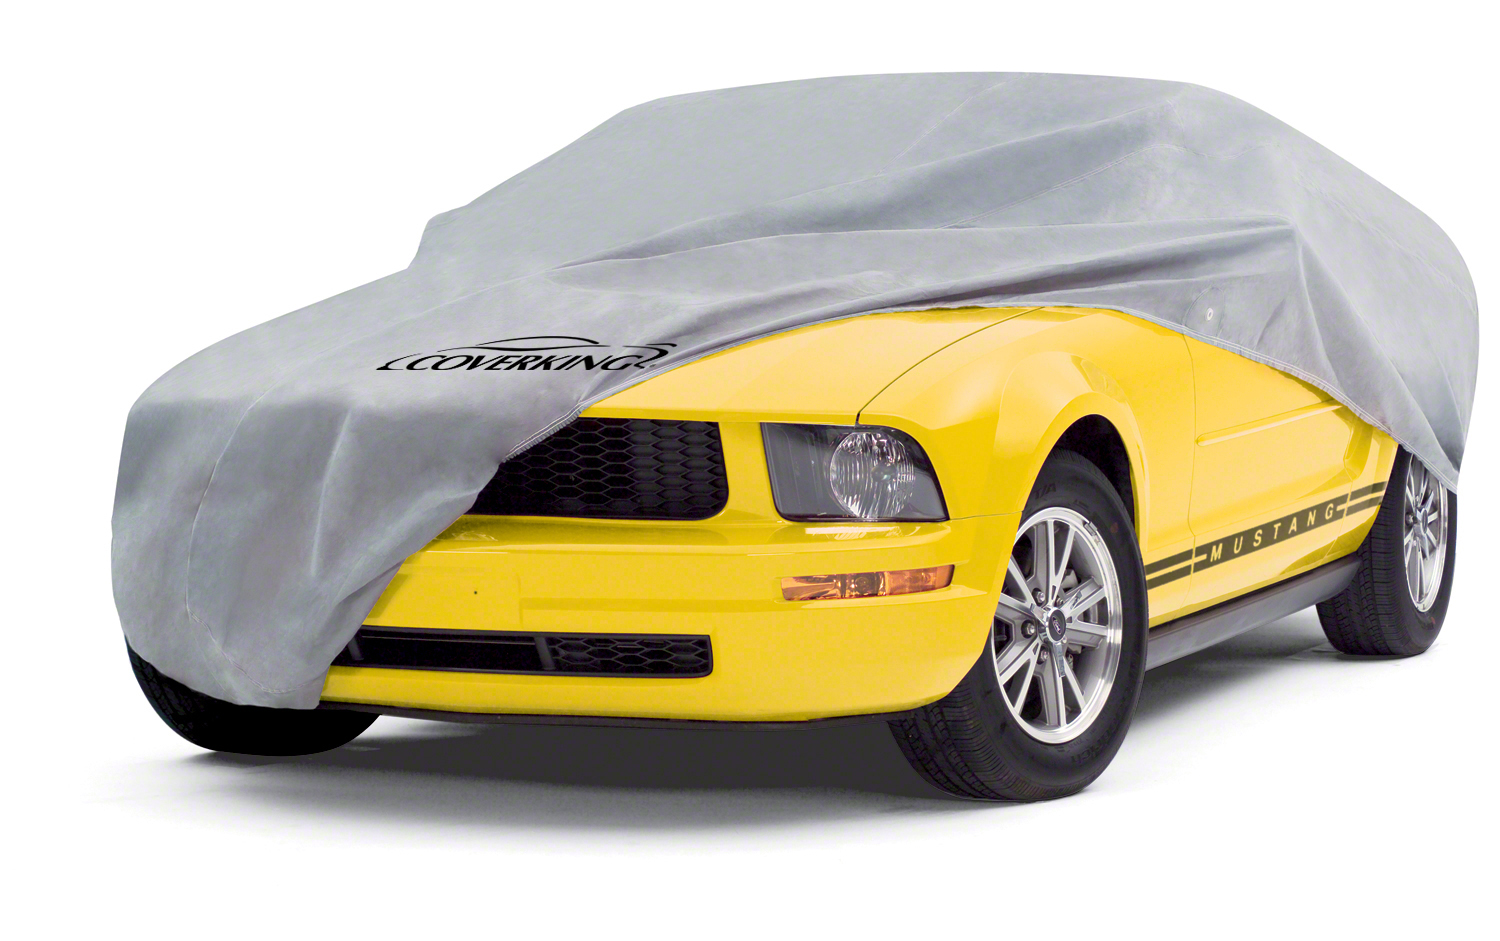 UVCCAR4S98 Coverking Car Cover Fits Sedans Up to 19 Foot